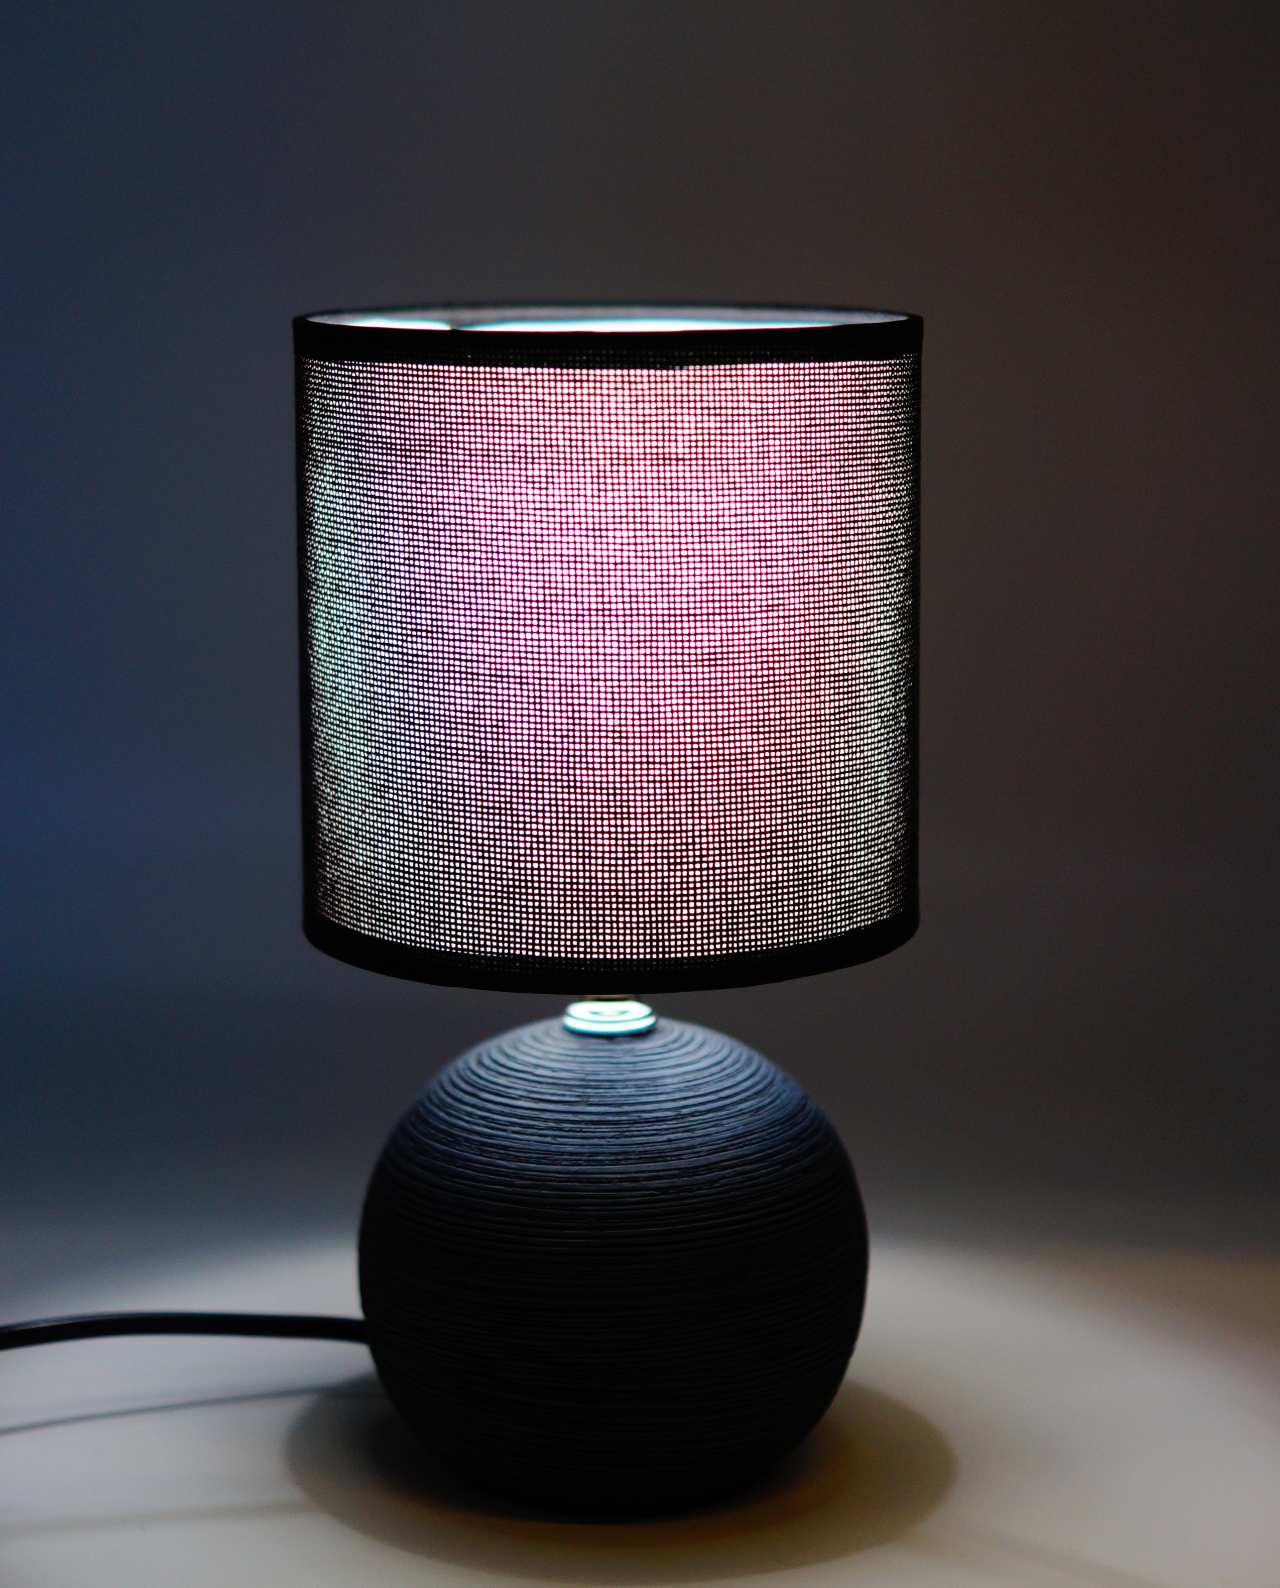 A table lamp of black round ceramic base